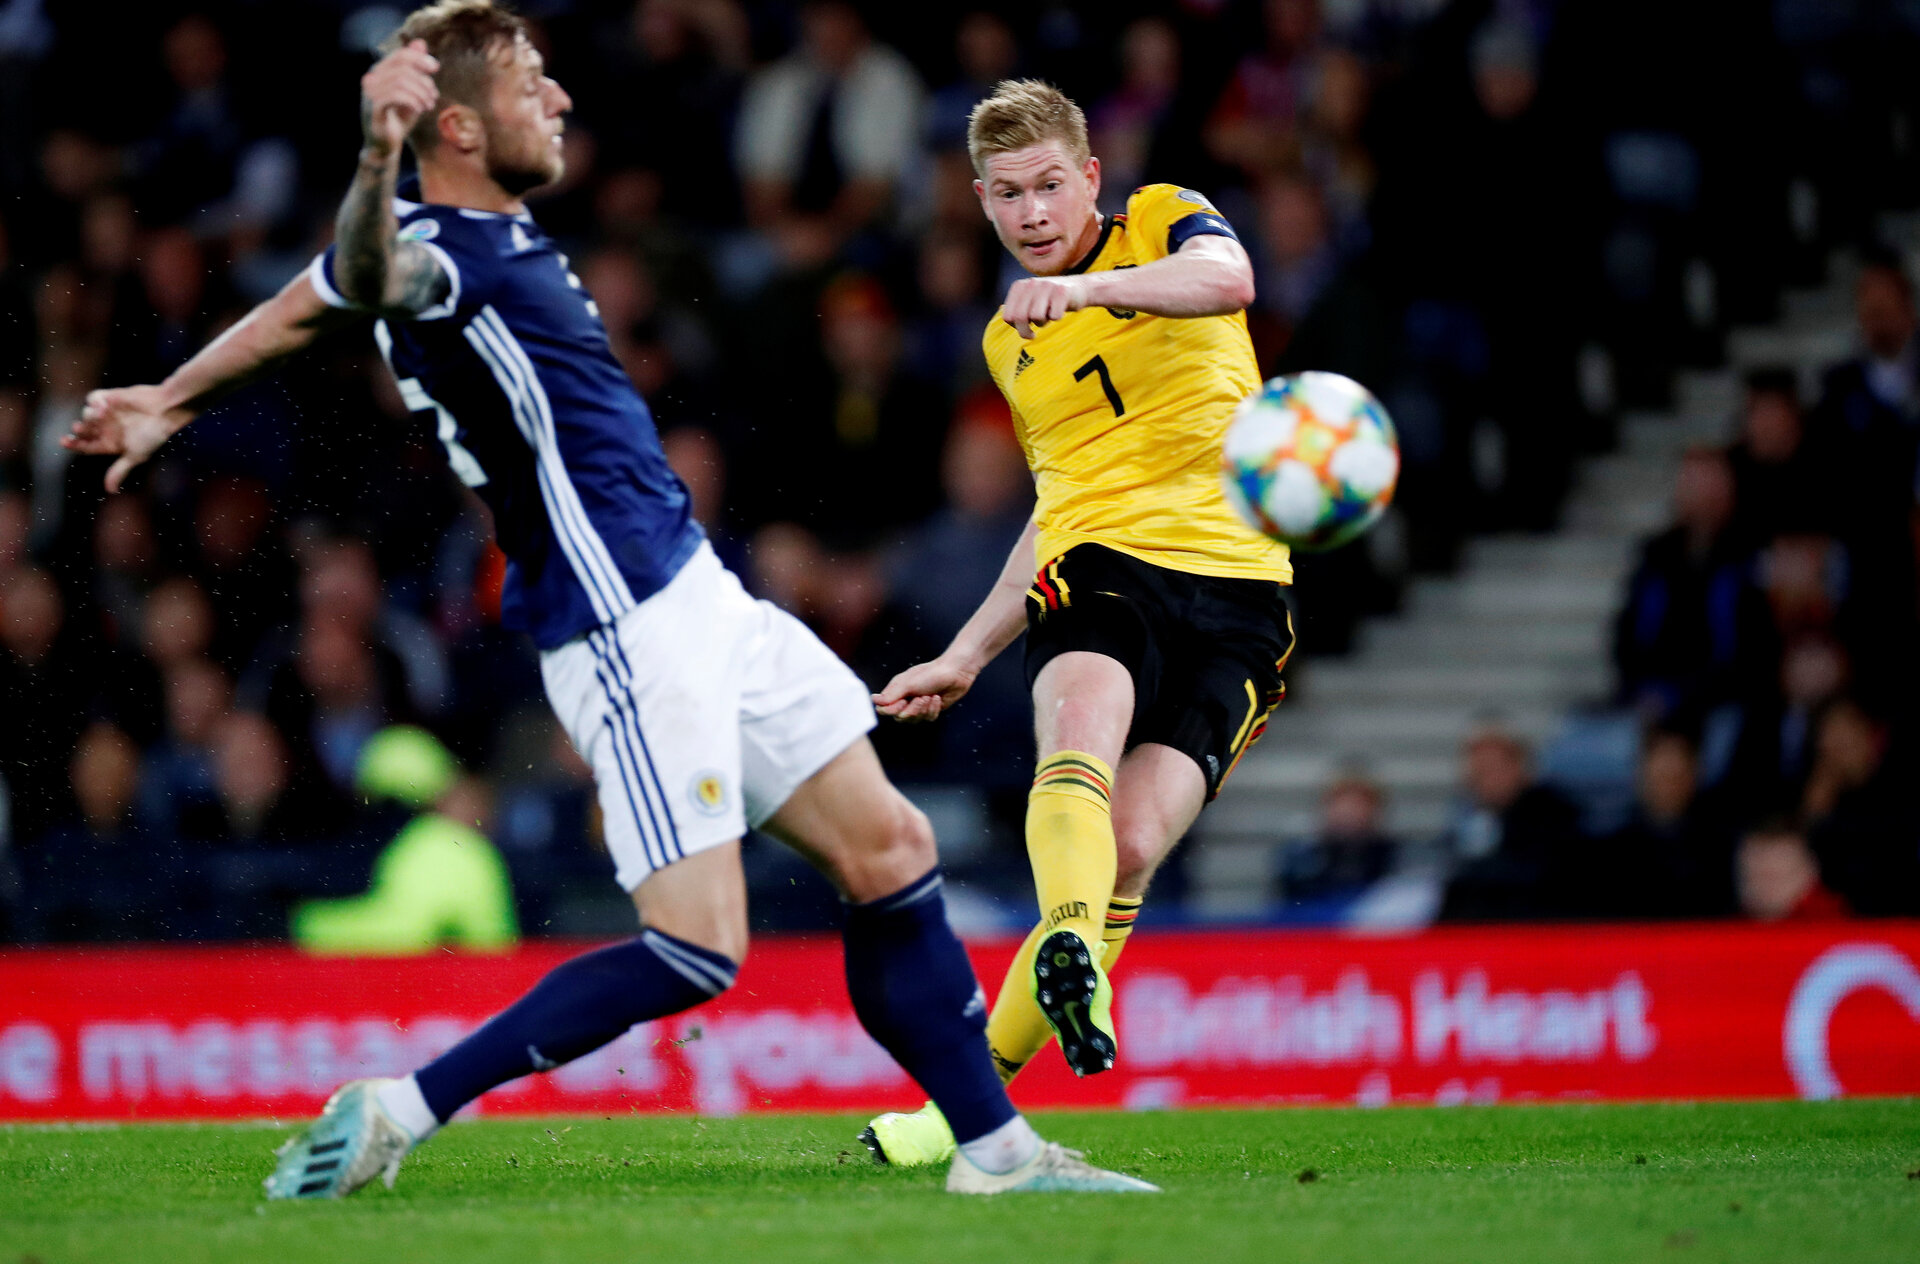 Soccer Football - Euro 2020 Qualifier - Group I - Scotland v Belgium - Hampden Park, Glasgow, Britain - September 9, 2019  Belgium's Kevin De Bruyne scores their fourth goal   REUTERS/Russell Cheyne